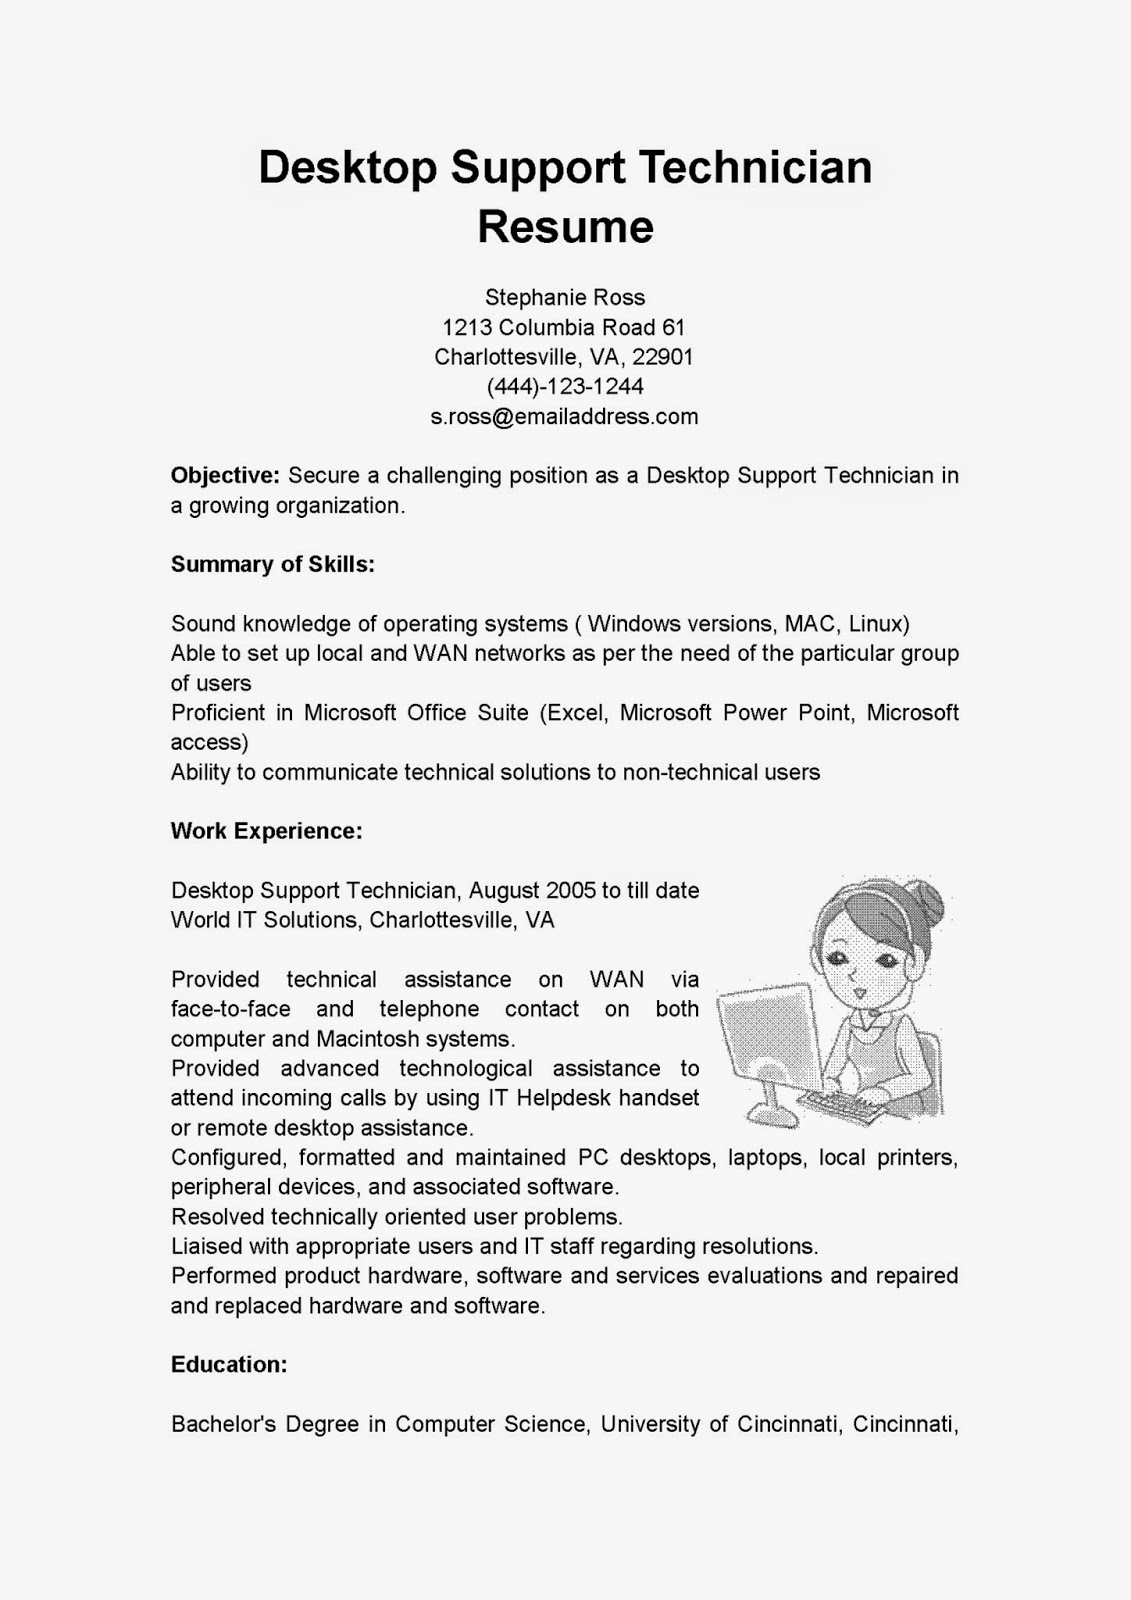 resume samples  desktop support technician resume sample